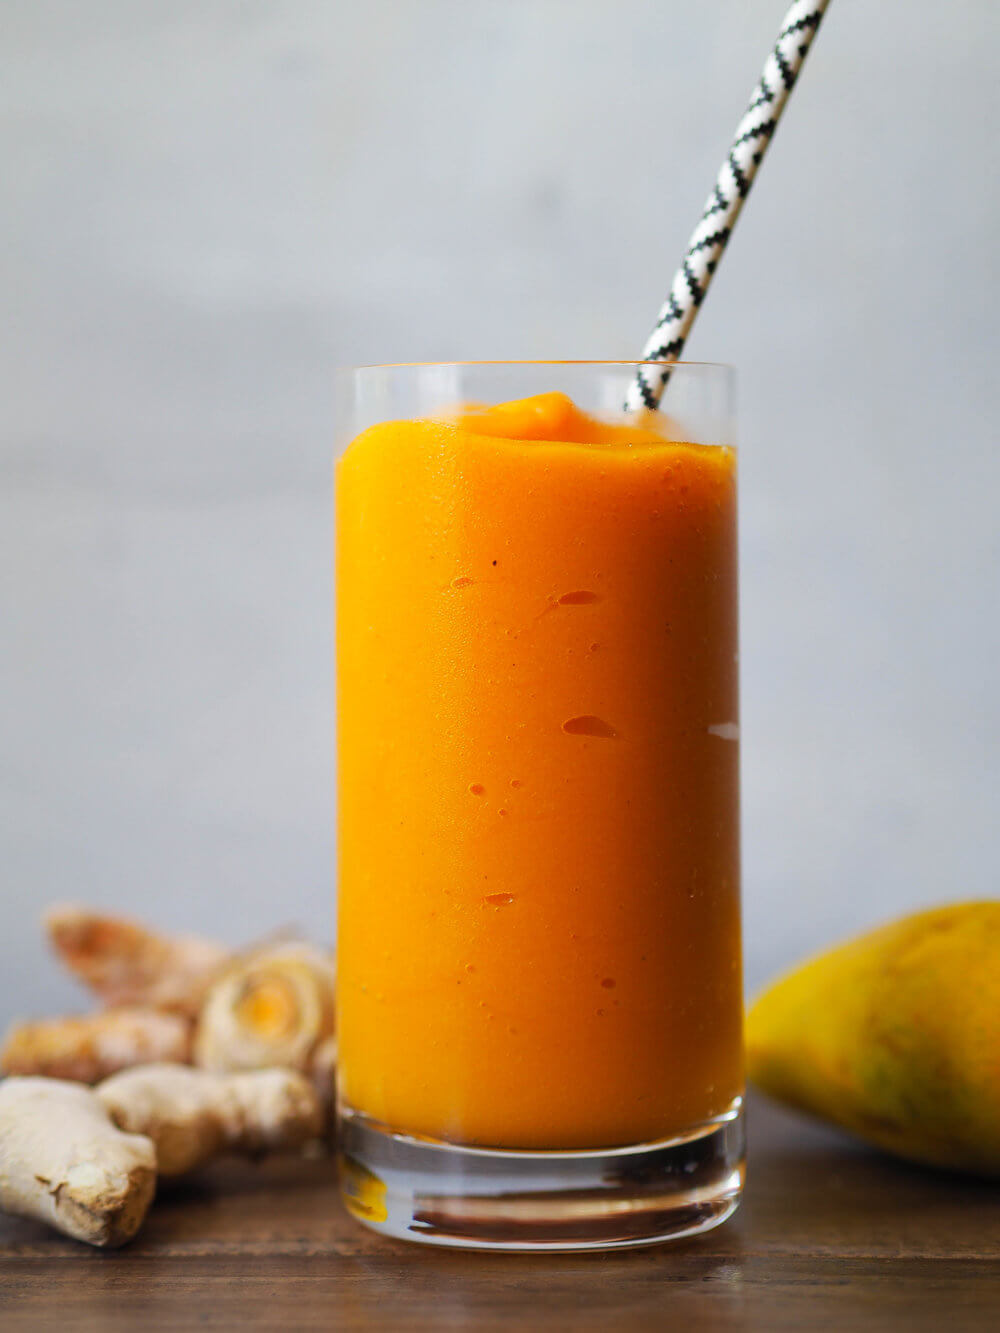 Hawaiian Tropical Smoothie Recipes to Make at Home featured by top Hawaii blog, Hawaii Travel with Kids: This turmeric mango smoothie is creamy and refreshing! Blended with coconut water so it's extra hydrating! #summer #smoothie #mango #turmeric #healthyrecipe #vegan #vegetarian